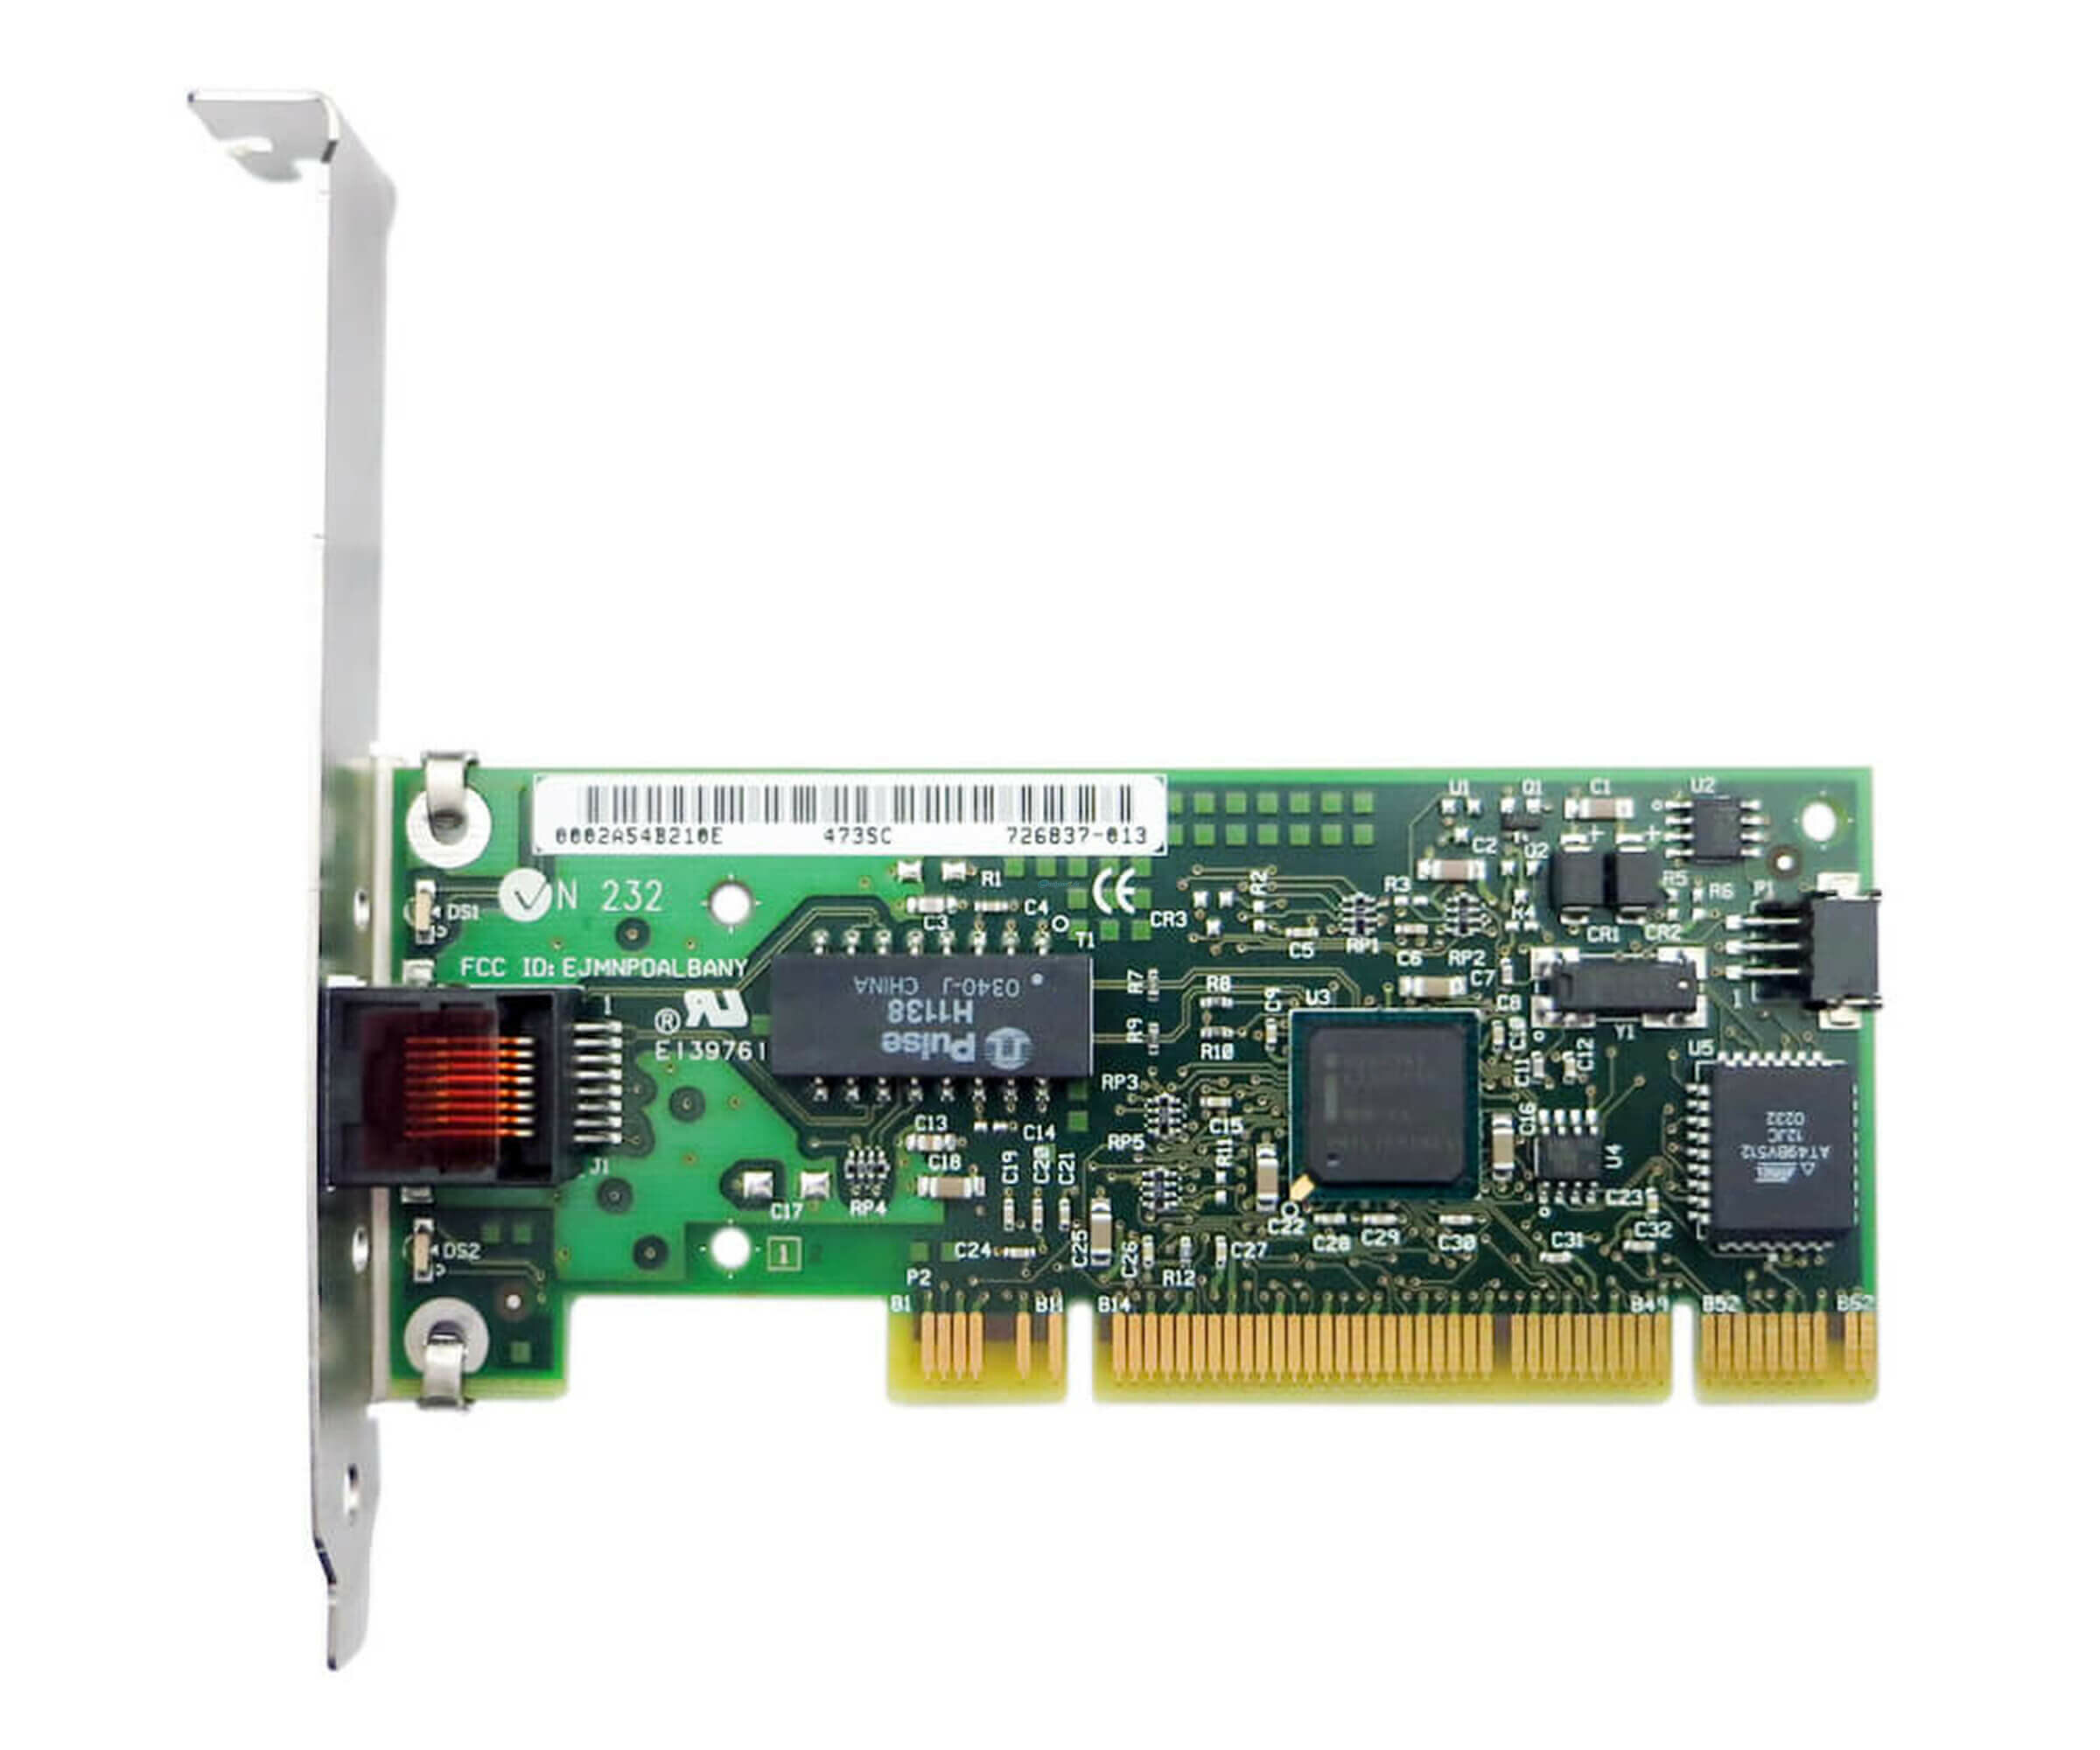 HP Compaq 174831-001 - NC3123 Fast Ethernet PCI 10/100 Adapter - für HP ProLiant PL1600 CL1850